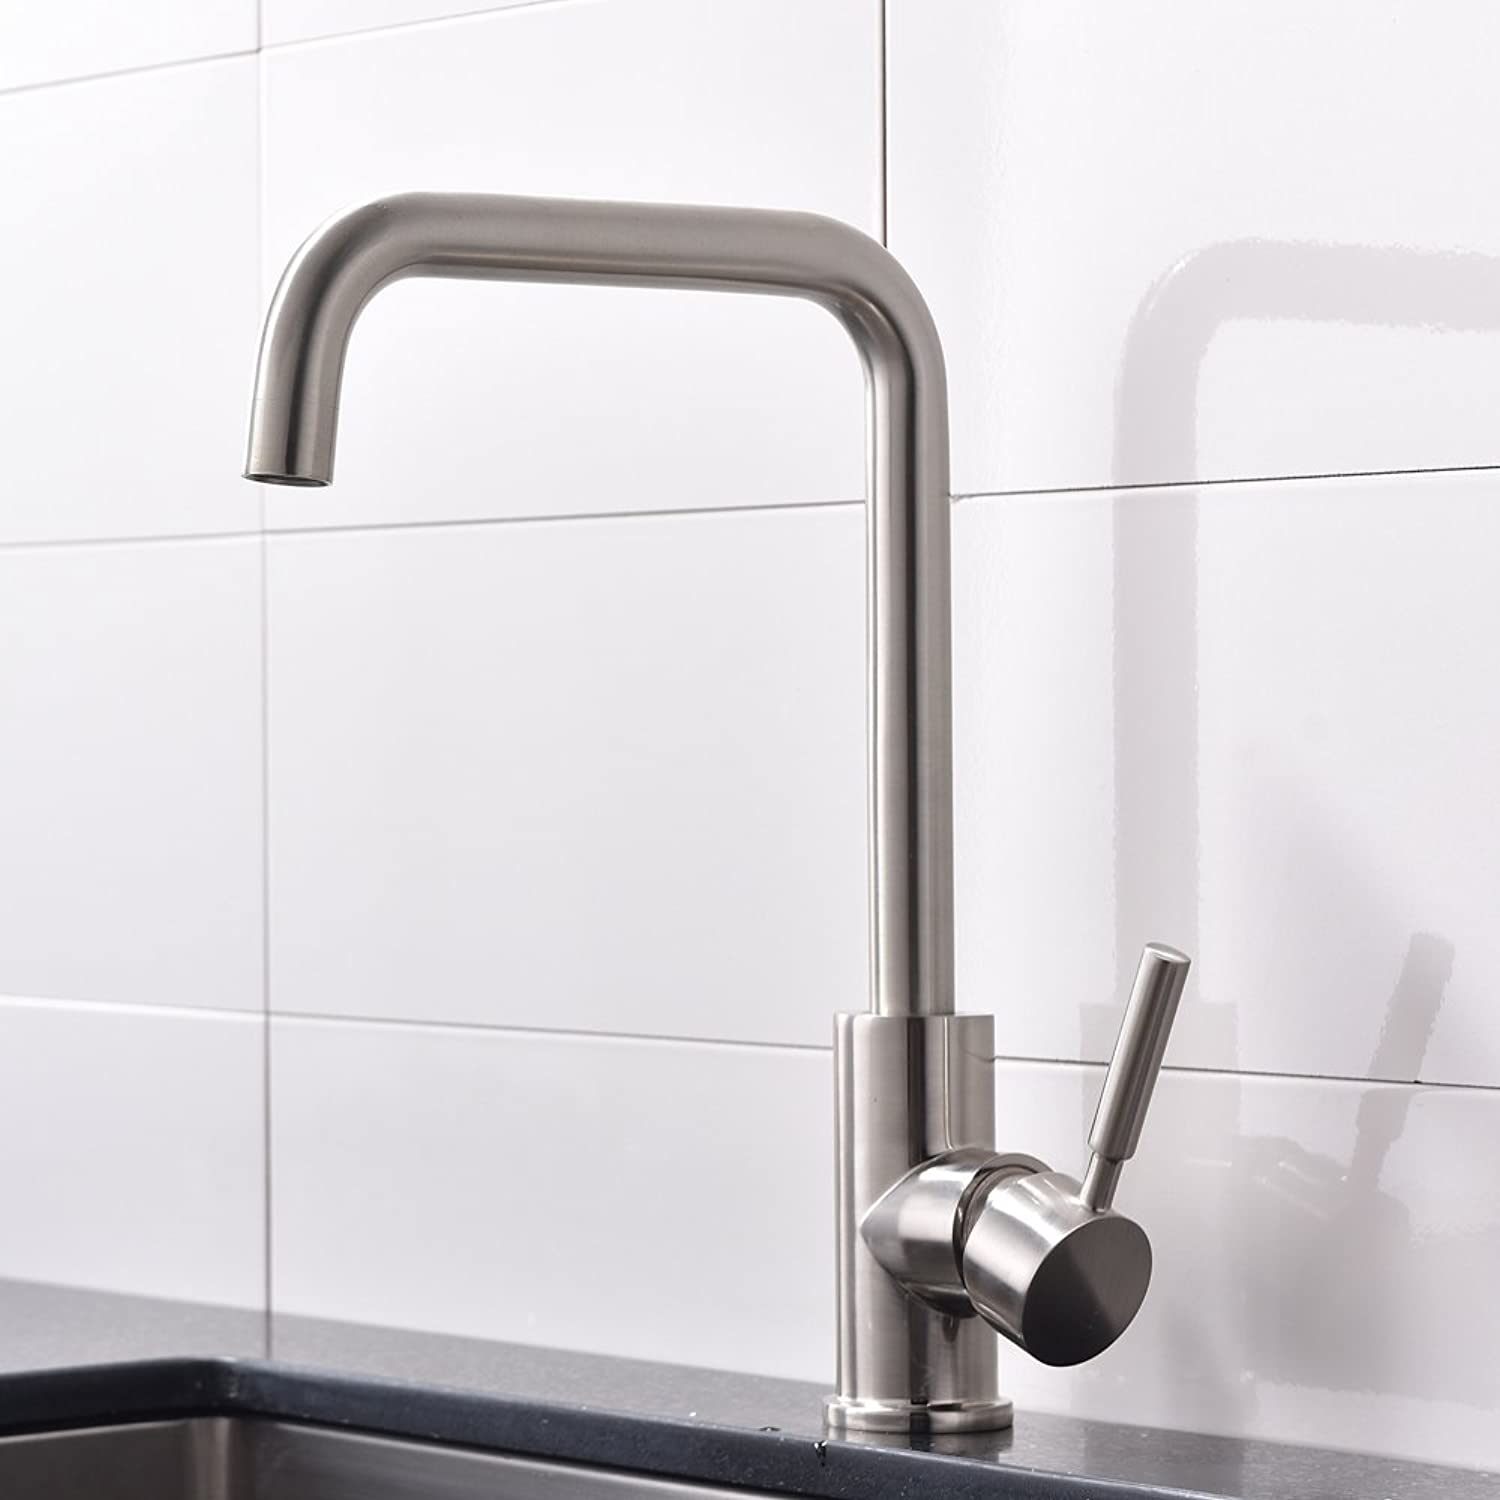 Taps UK Highly Recommended Single Handle Brushed Nickel Finish Spout Swivel Kitchen Mixer Tap, Modern Kitchen Sink Taps